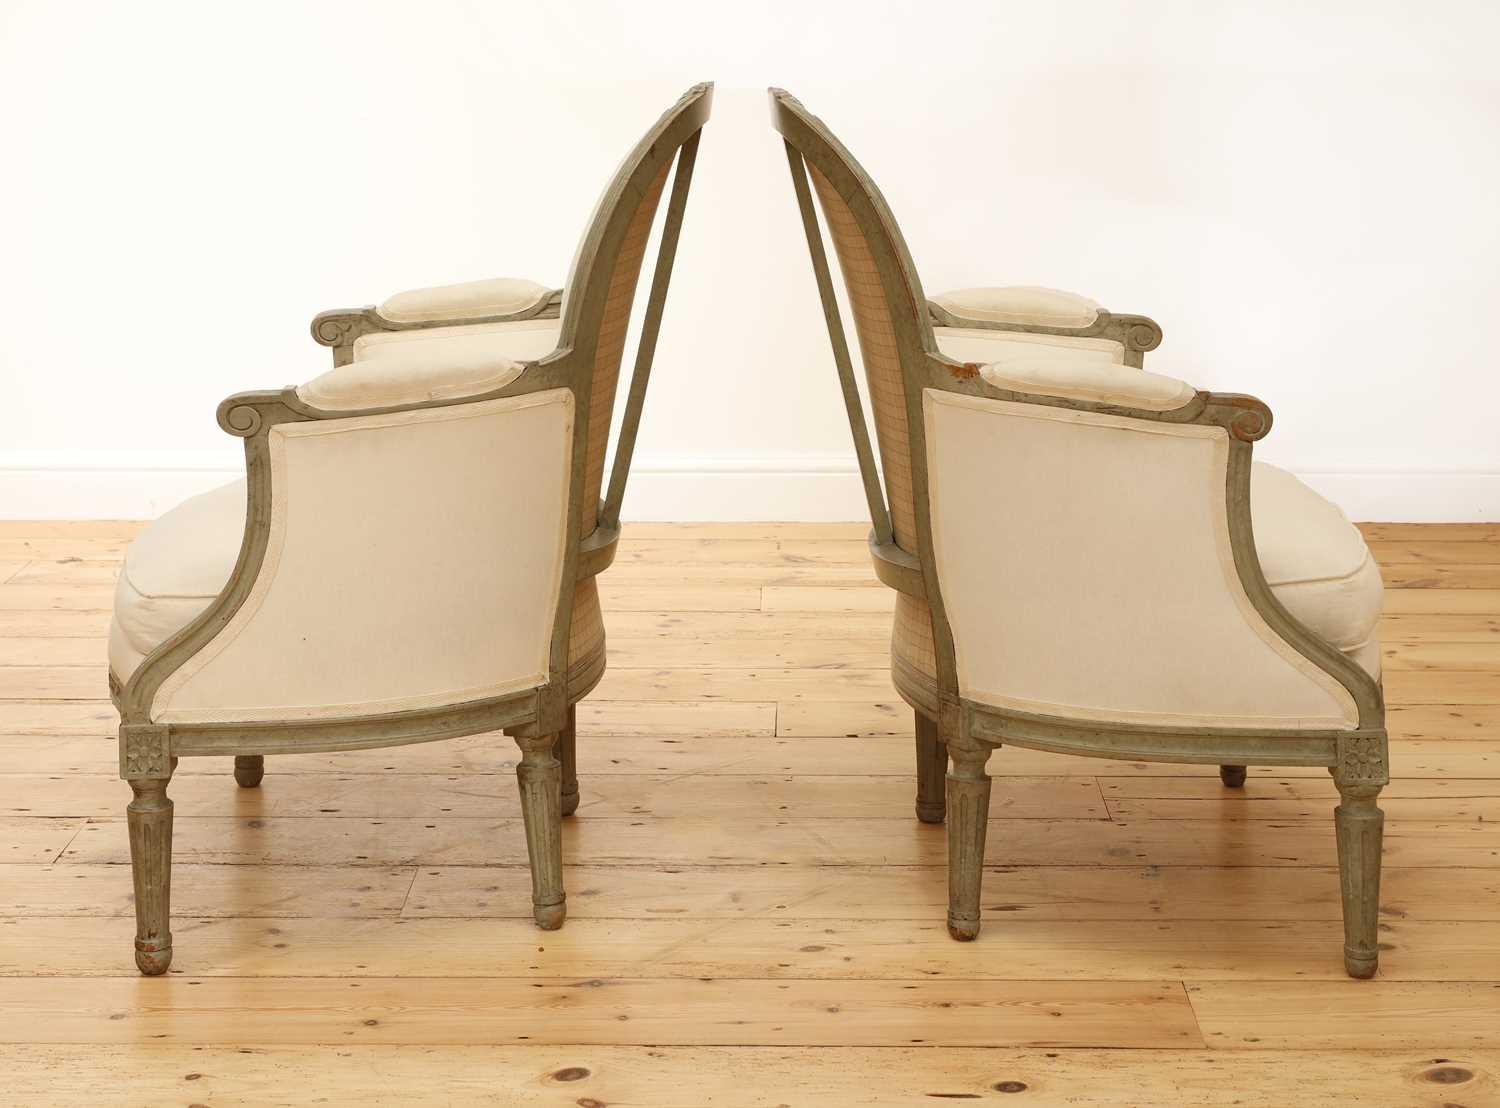 A pair of French Louis XVI-style painted fauteuils, - Image 2 of 5